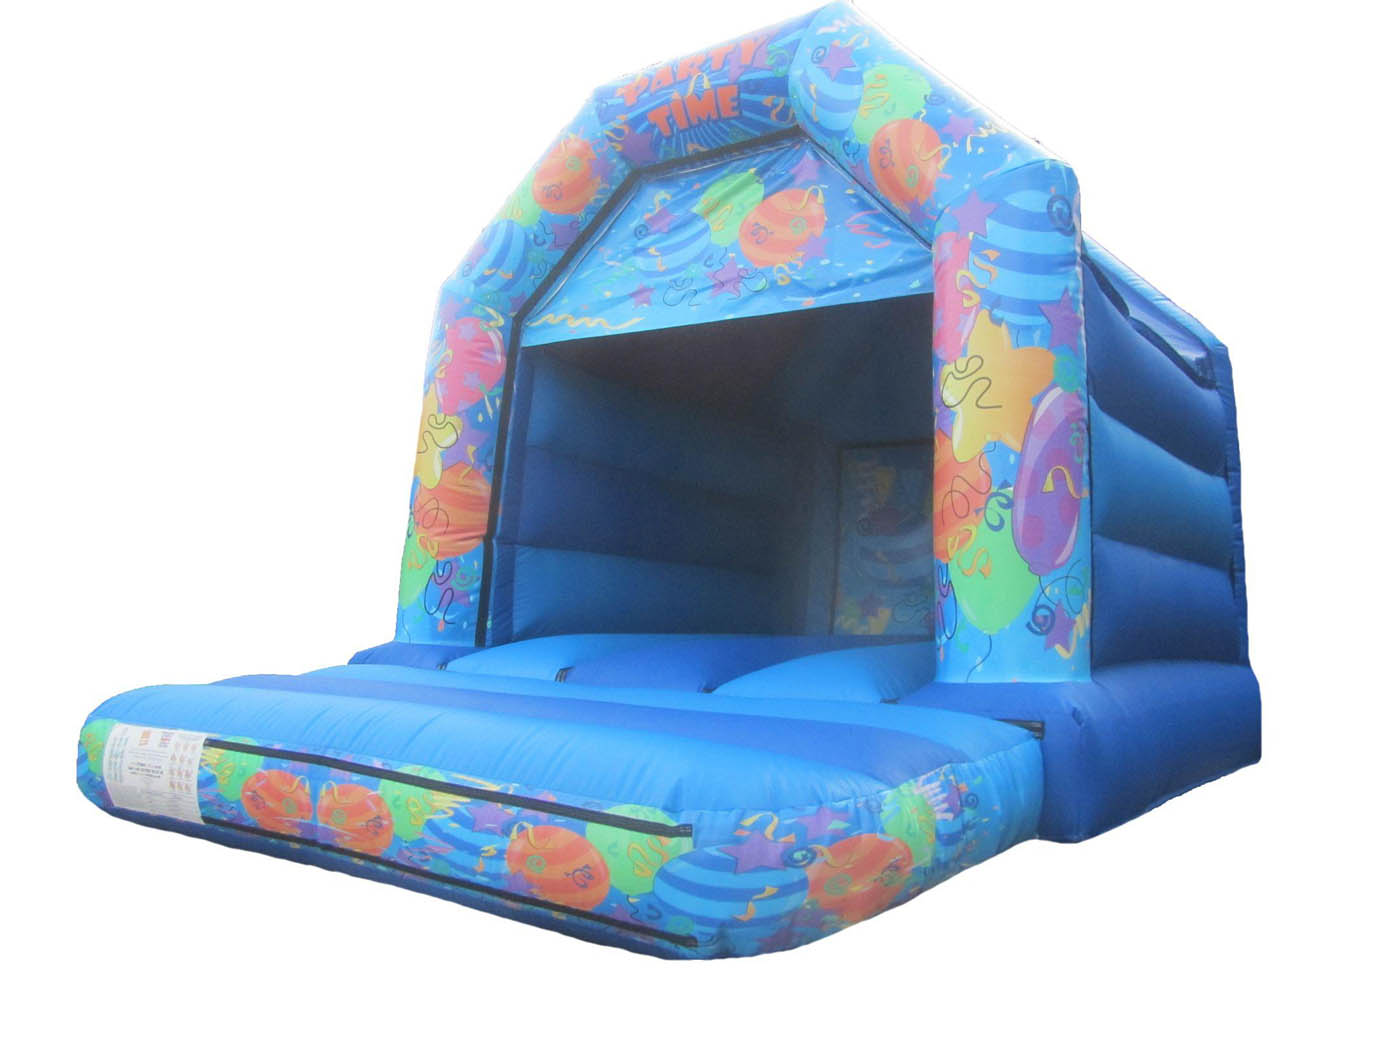 Blue Bouncy Castle with Party Themed Artwork